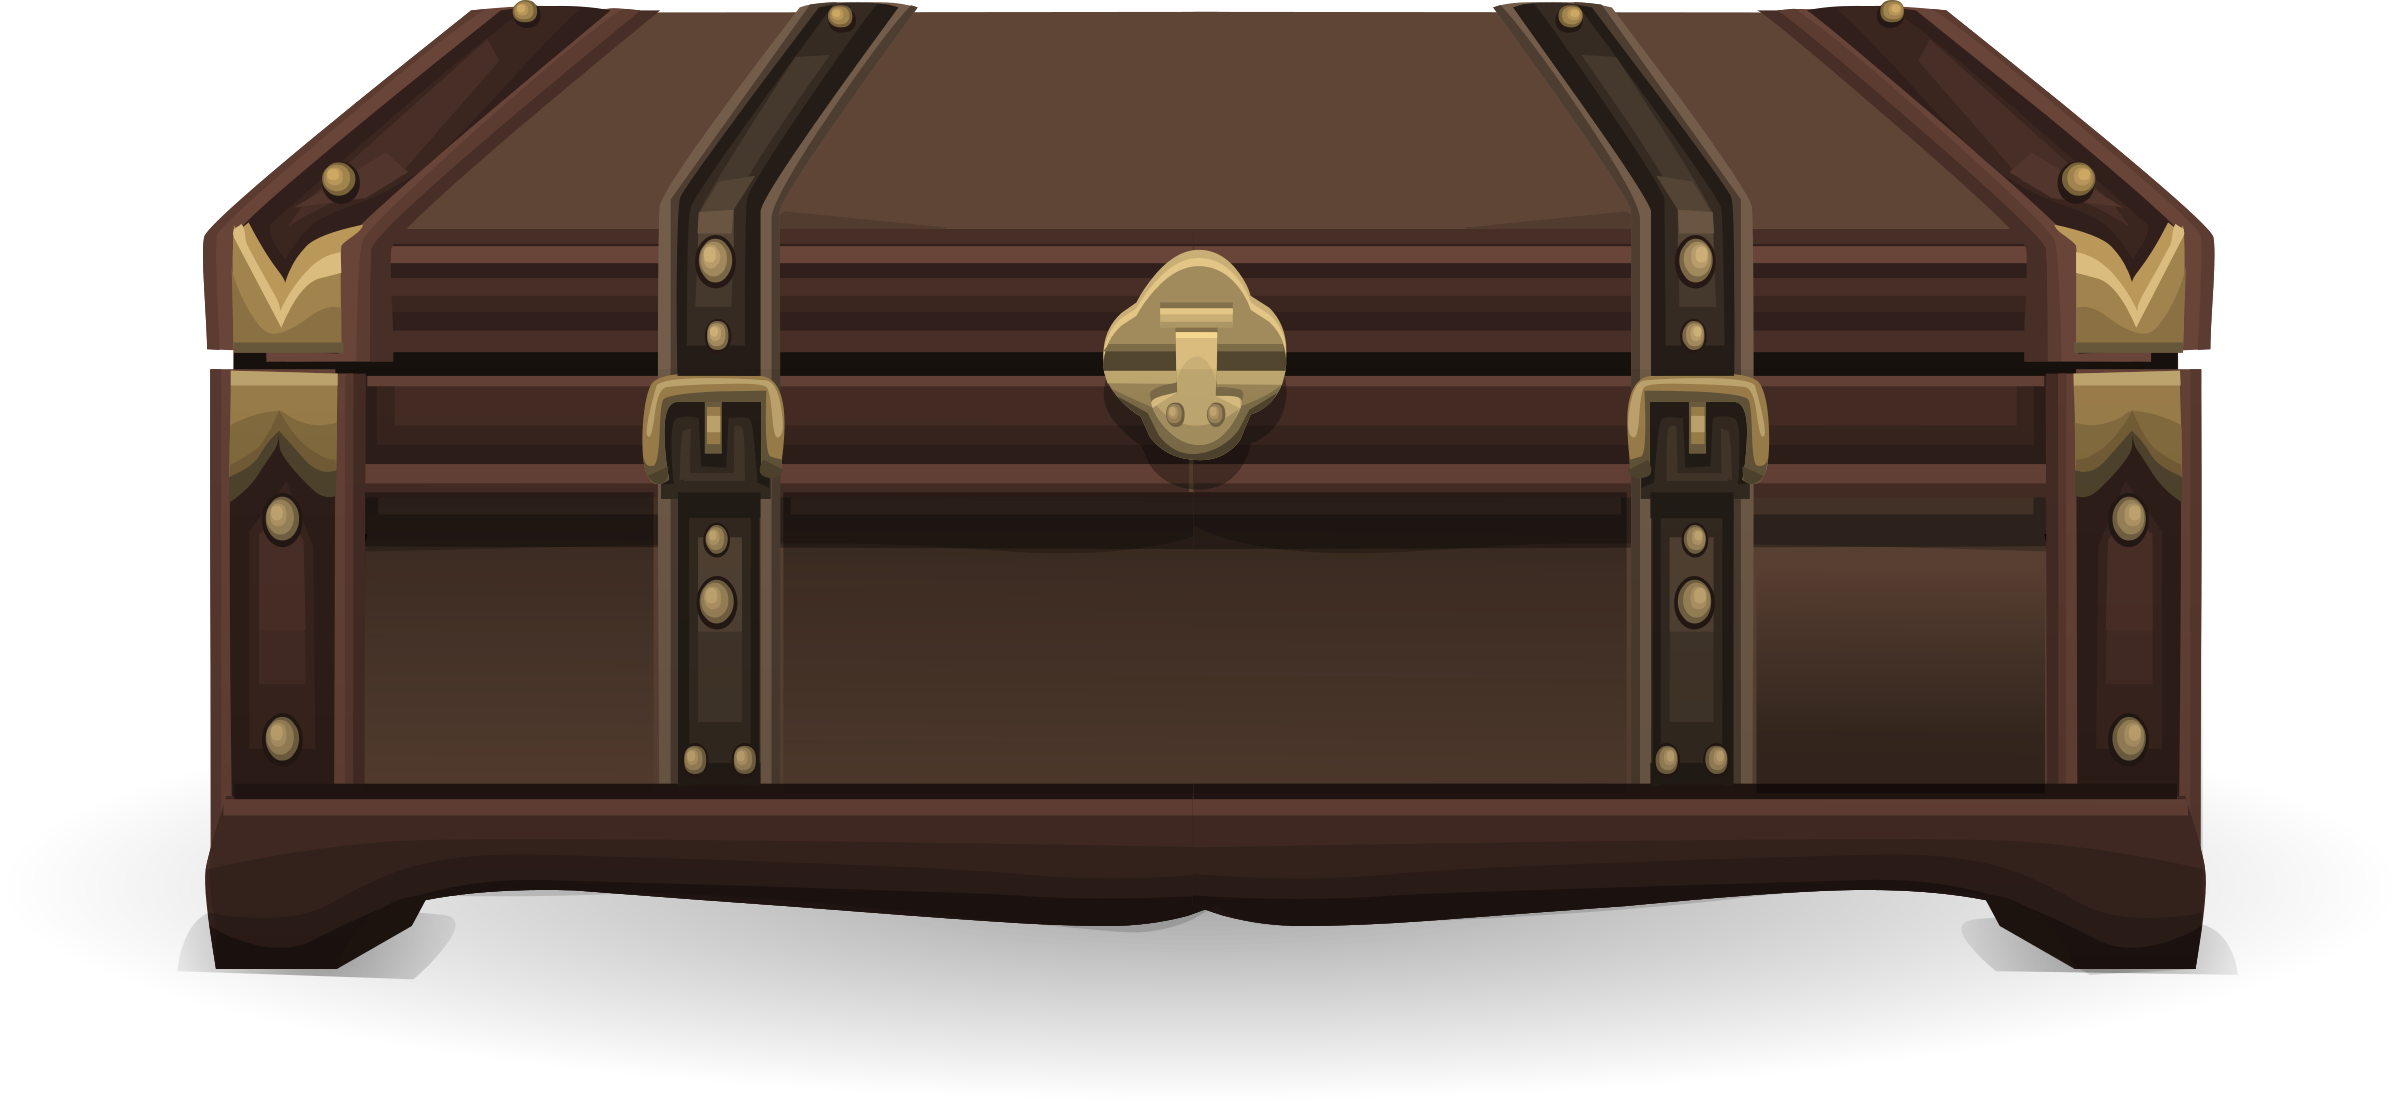 Antique suitcase from Glitch by anarres